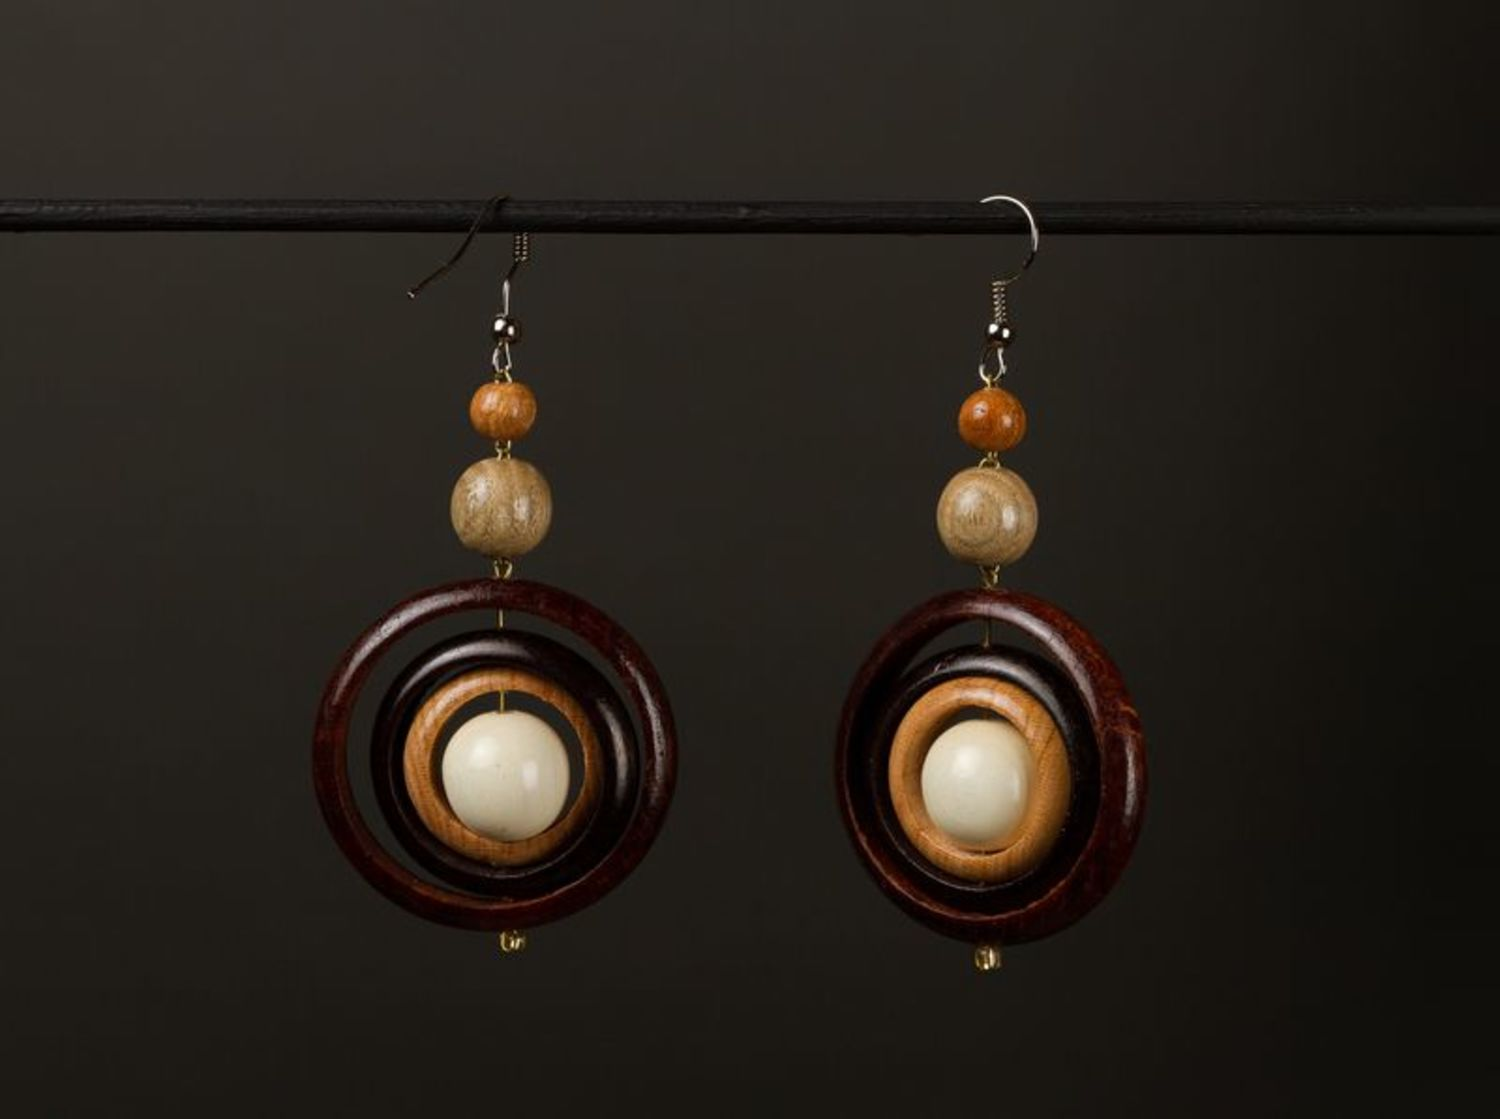 Wooden earrings photo 1